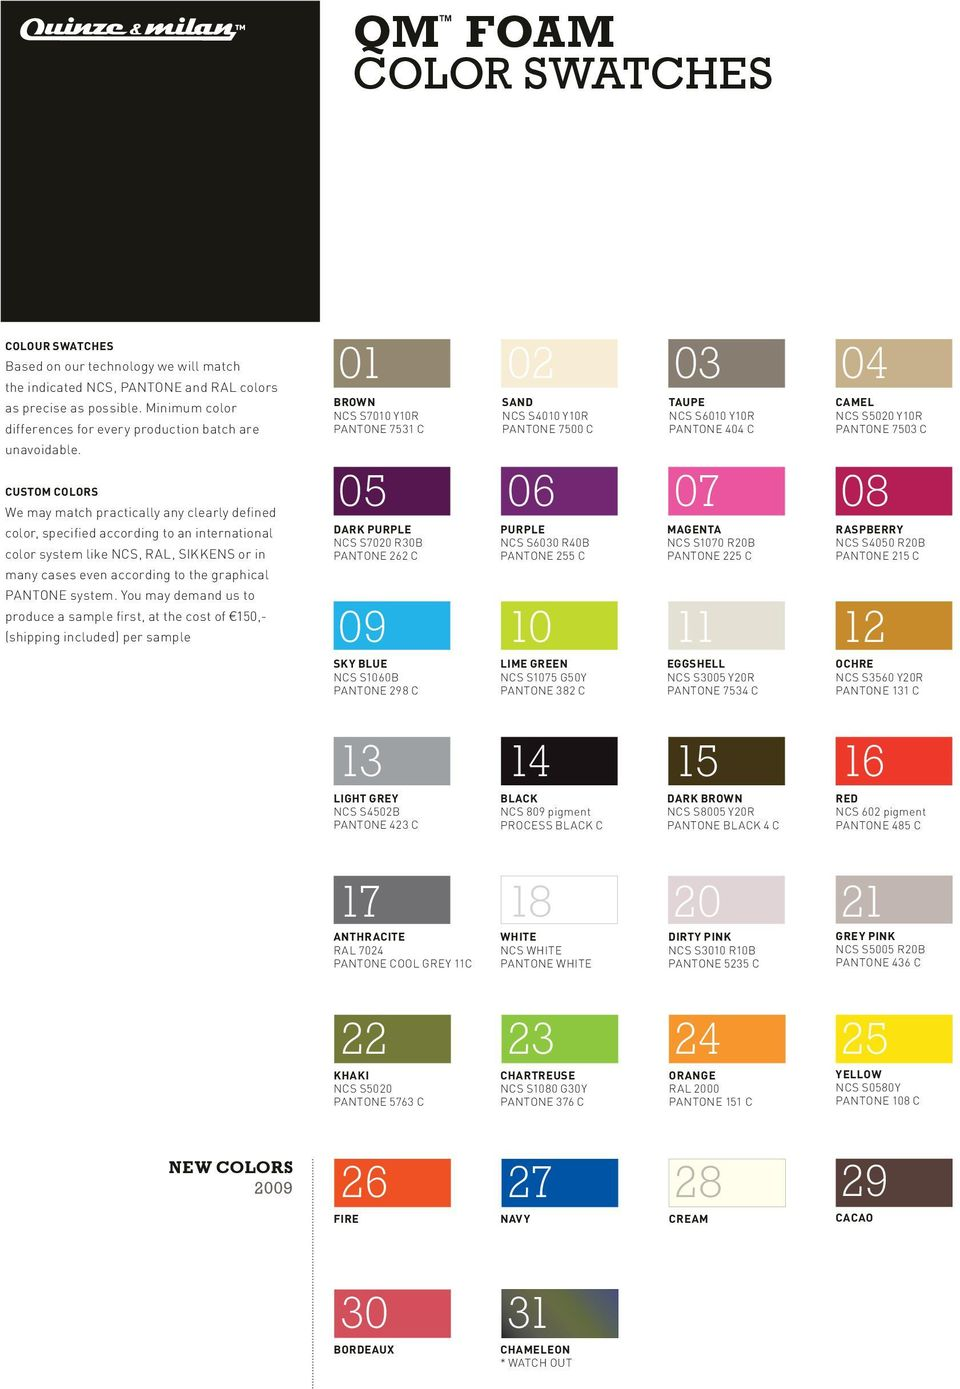 CUSTOM COLORS We may match practically any clearly defined color, specified according to an international color system like NCS, RAL, SIKKENS or in many cases even according to the graphical PANTONE